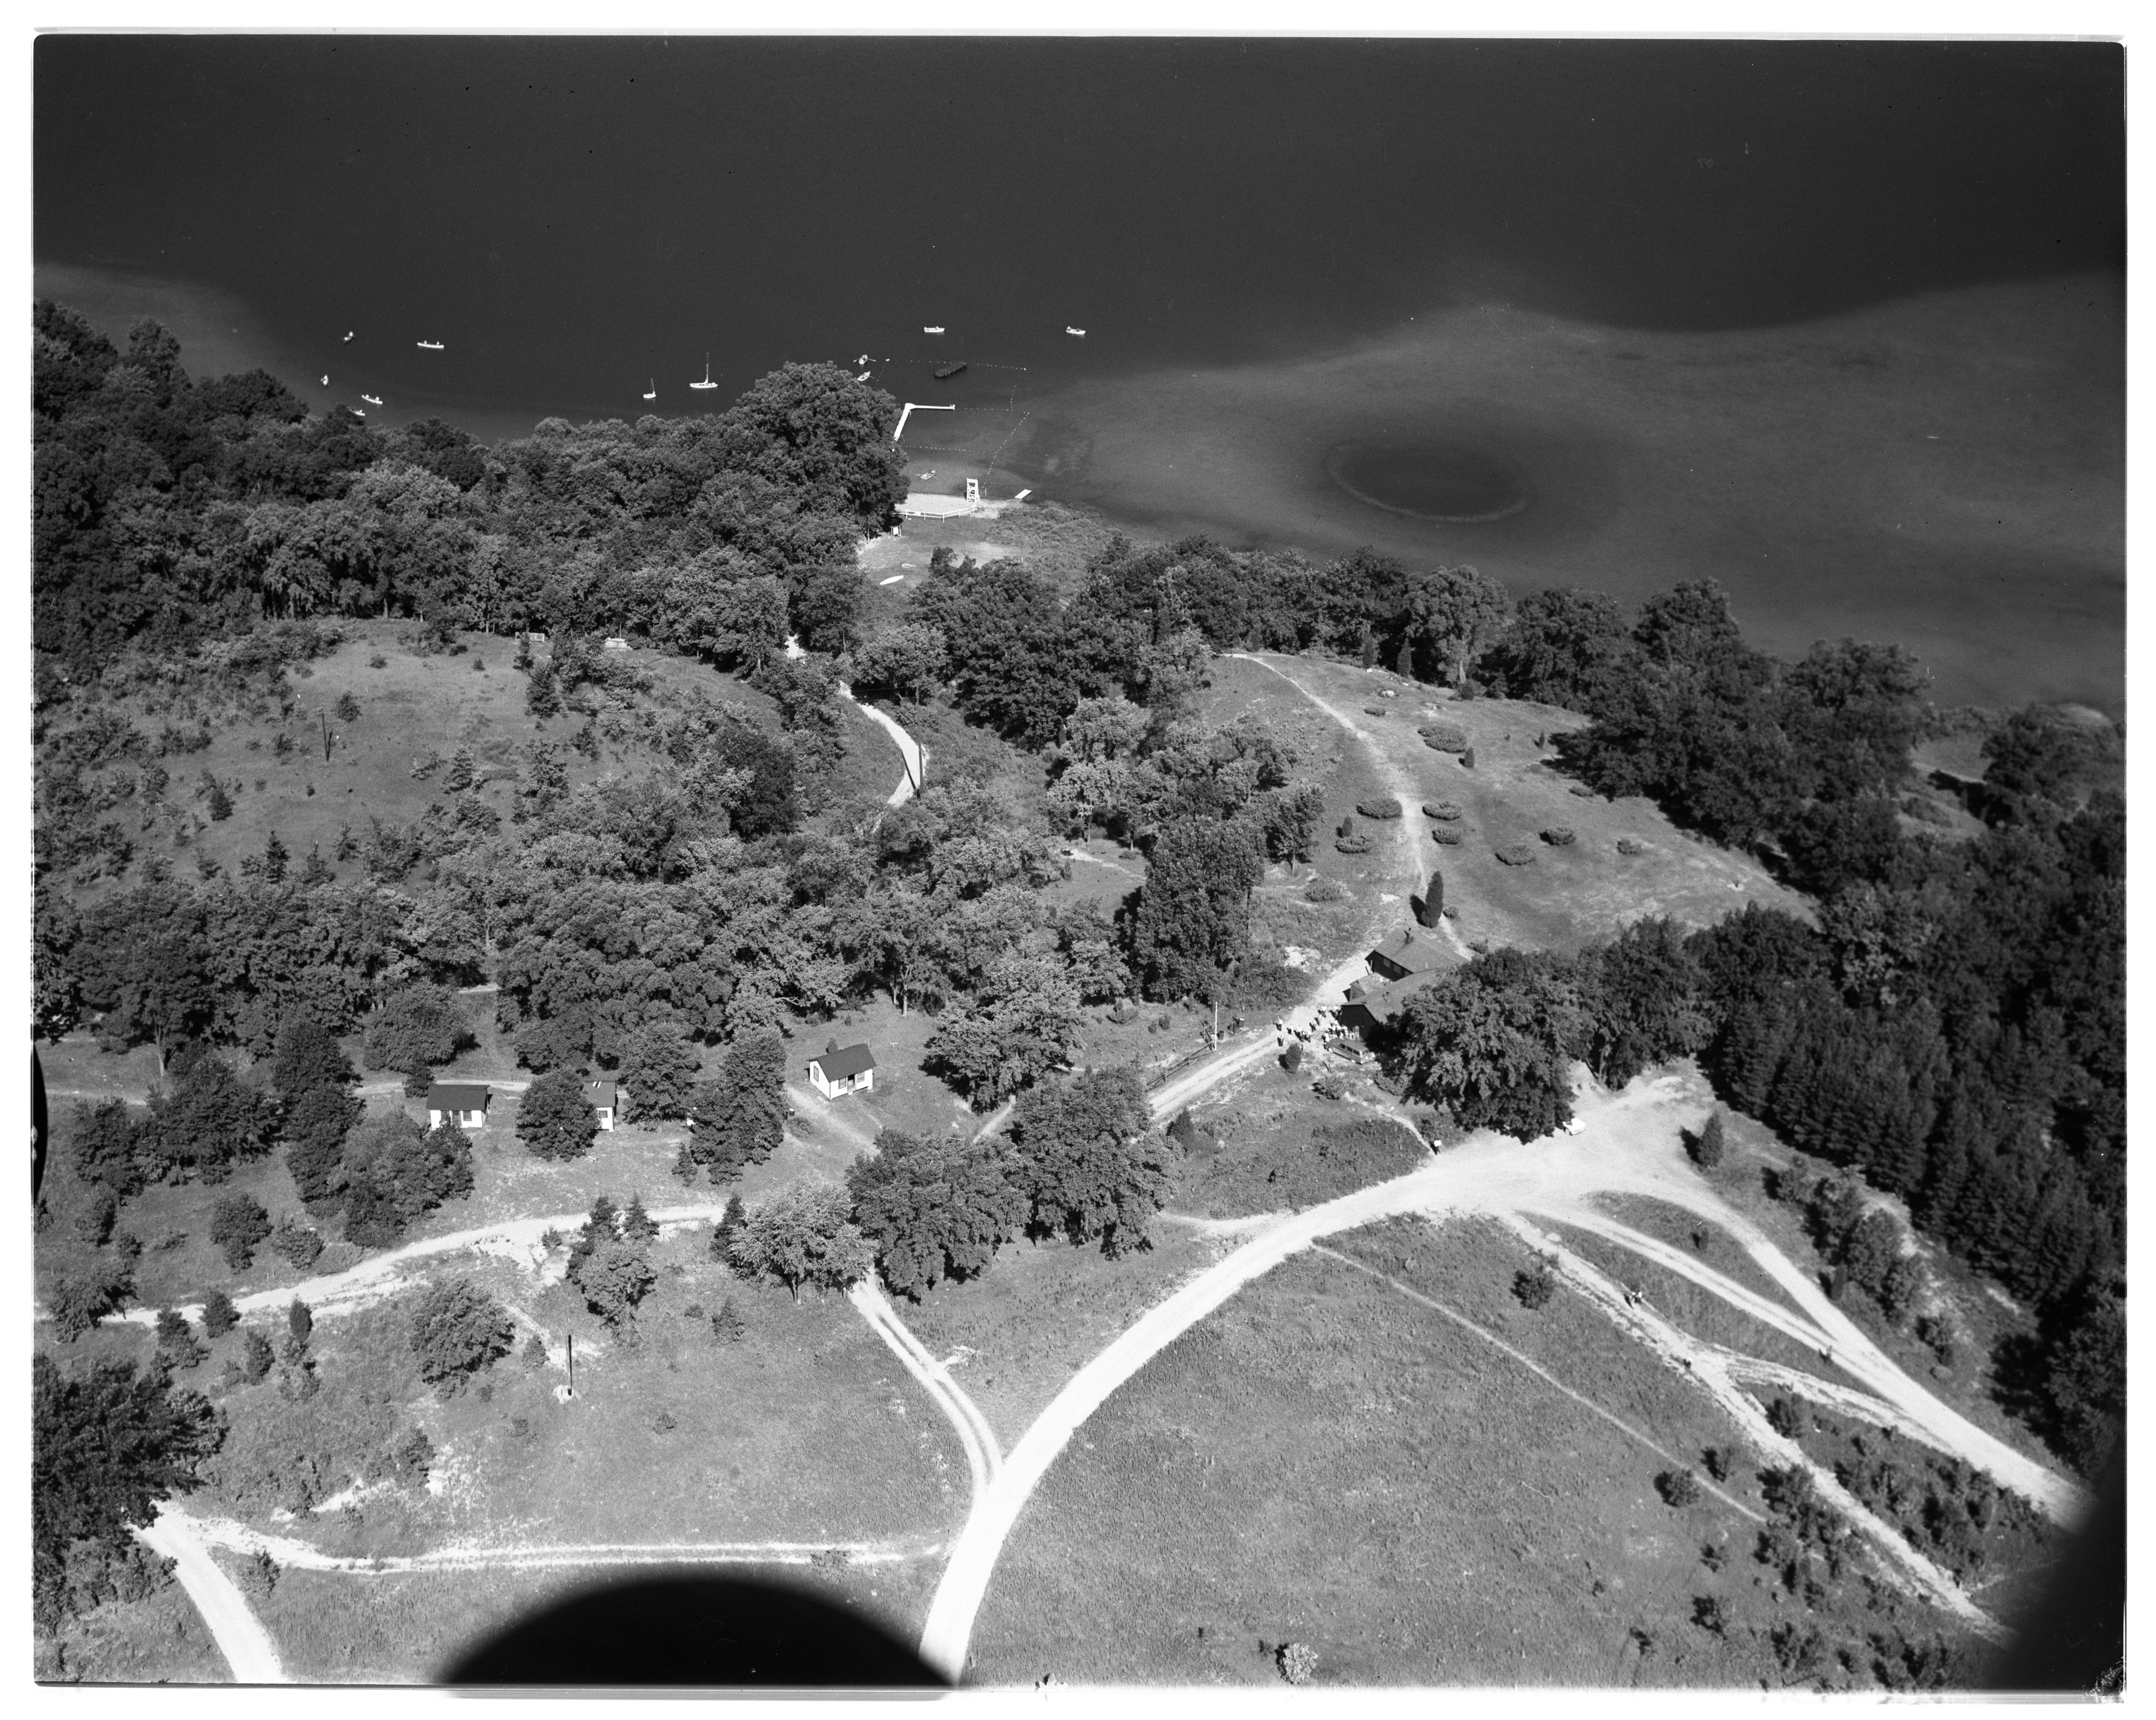 Aerial Photograph of the Bruin Lake Boy Scouts Campgrounds, Lyndon Township, September 1956 image